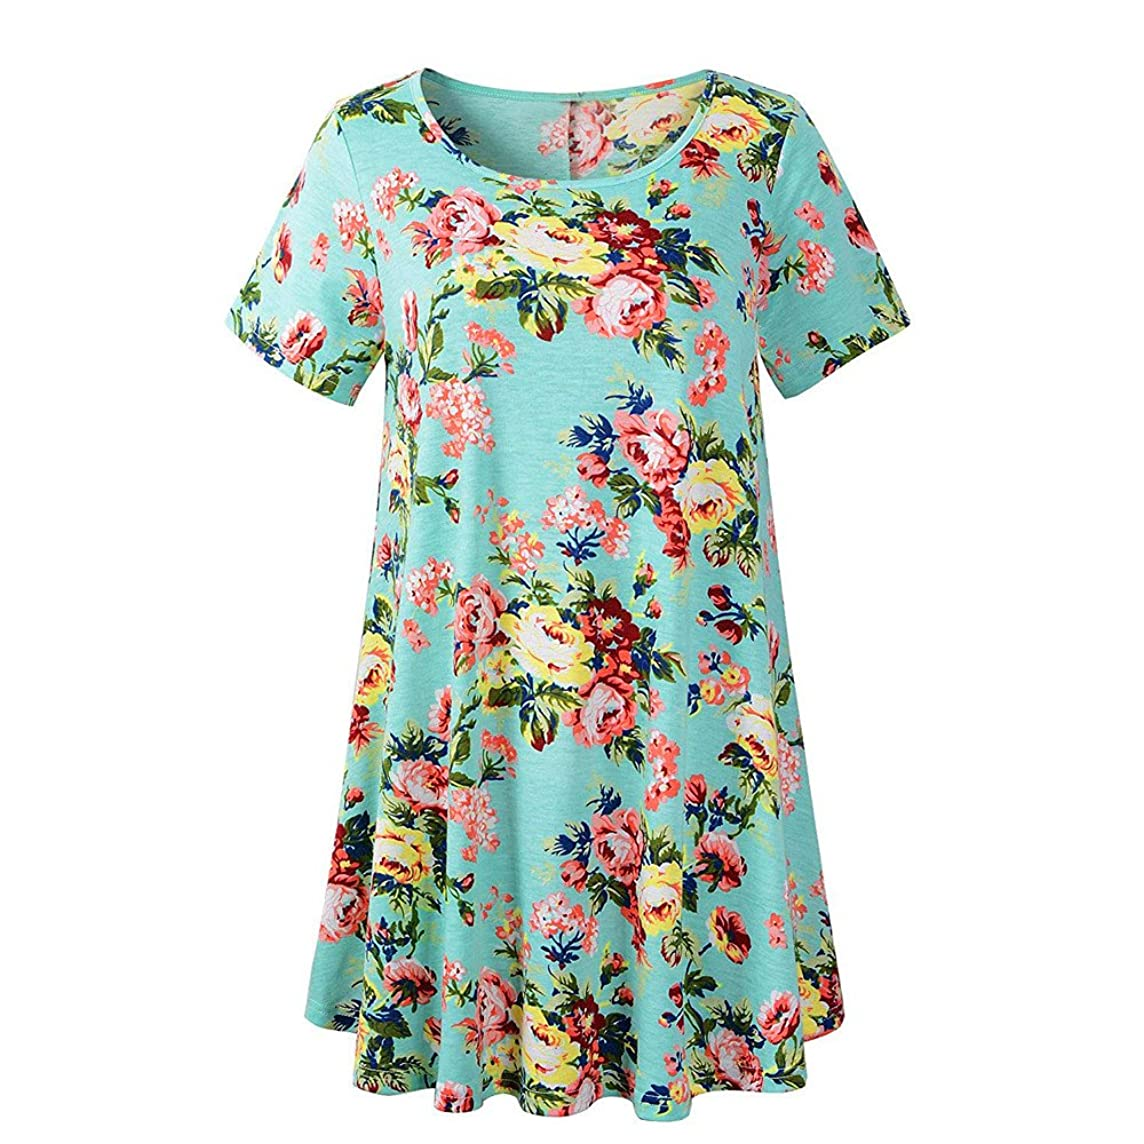 HAALIFE??Women's Plus Size Swing Tunic Top 3/4 Sleeve Floral Flare T-Shirt